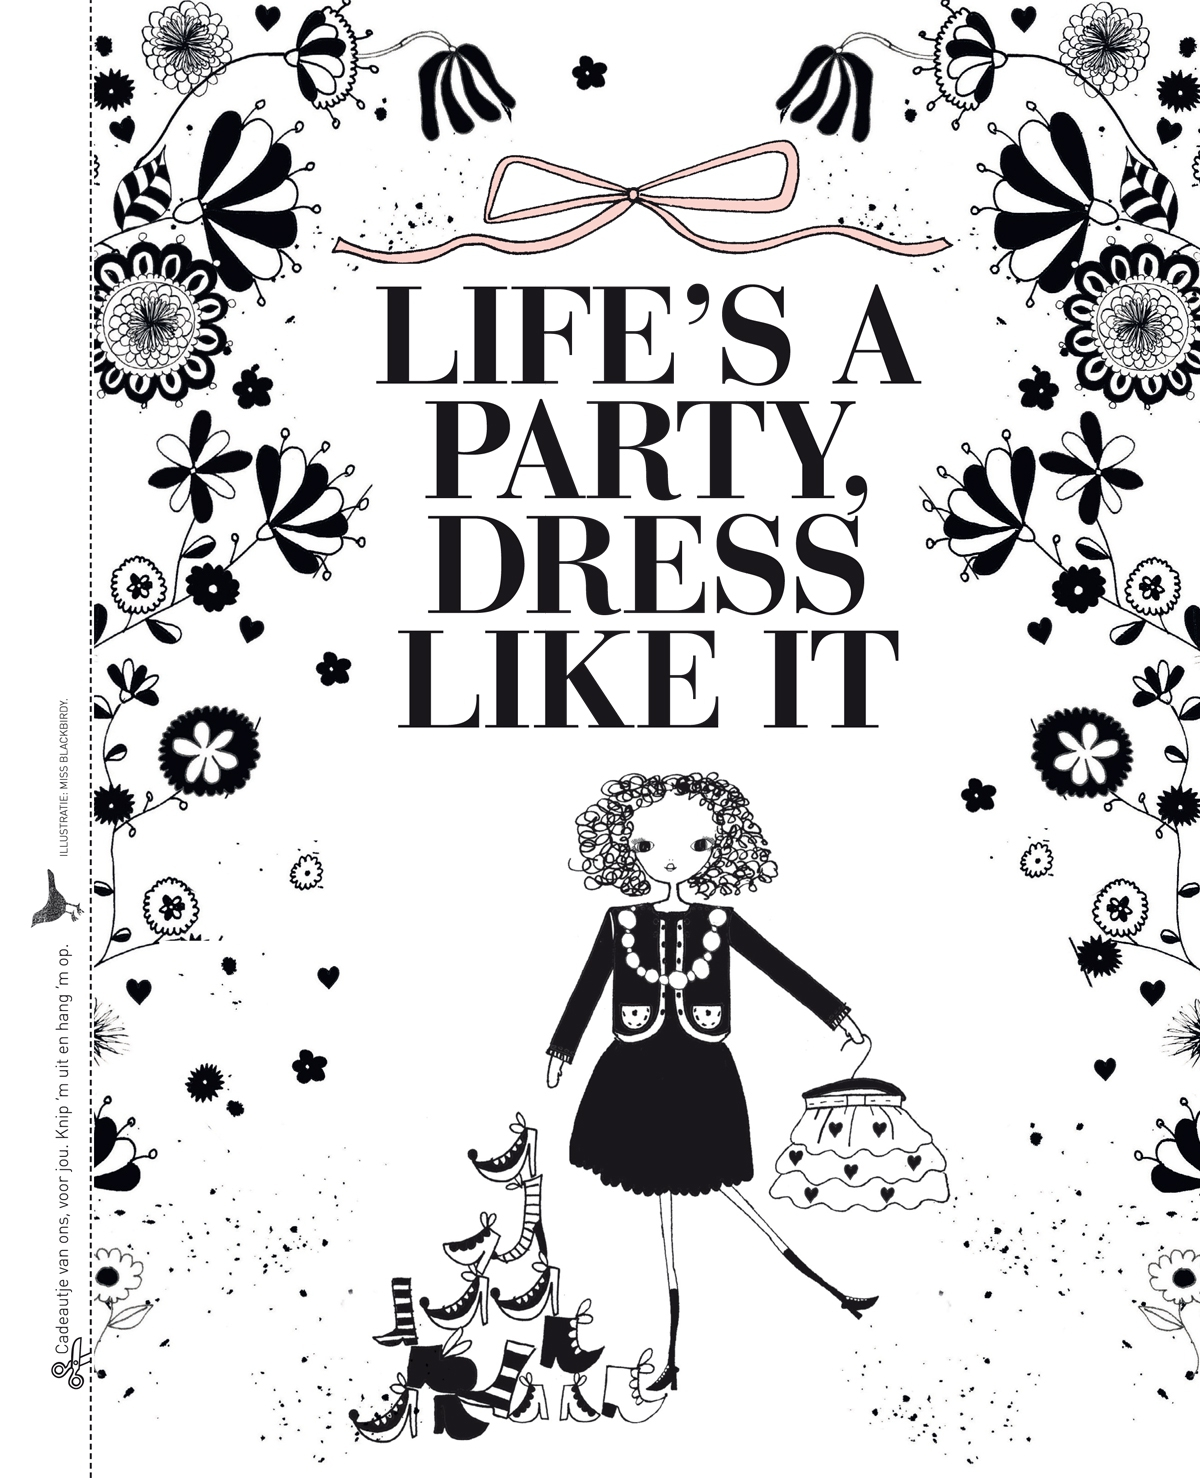 Life's a party, dress like it